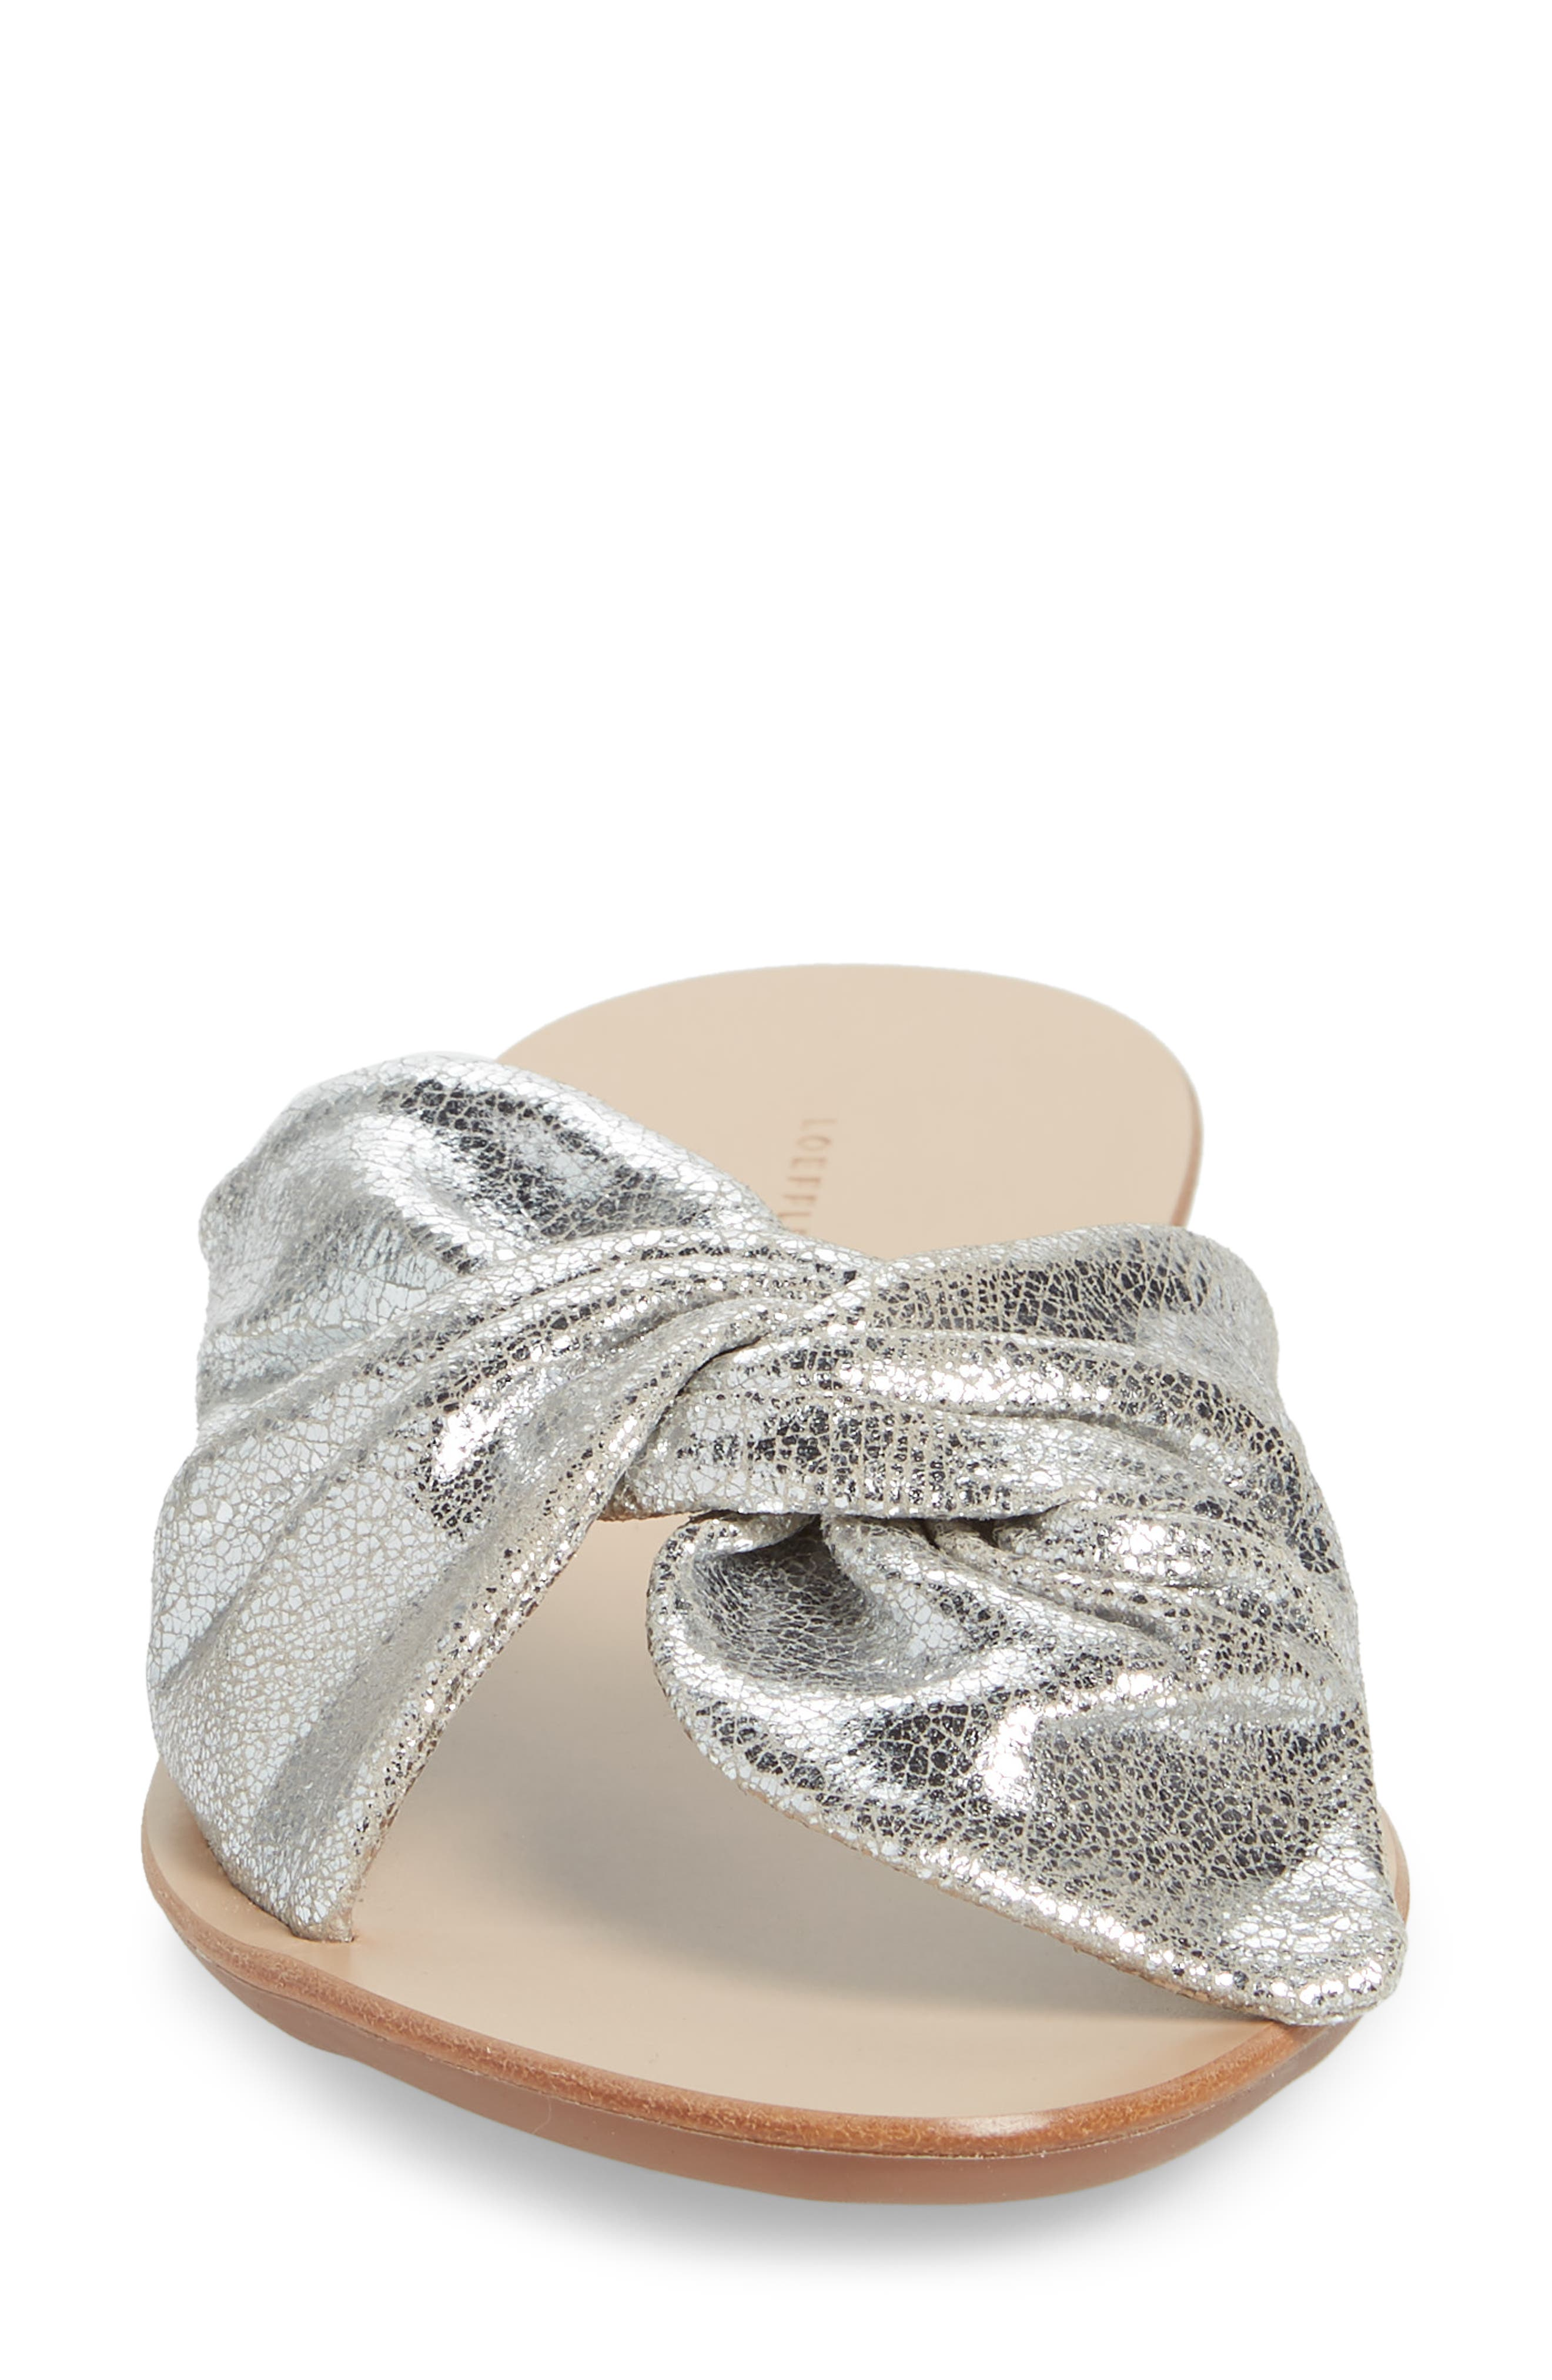 Phoebe Knotted Sandal,                             Alternate thumbnail 4, color,                             SILVER